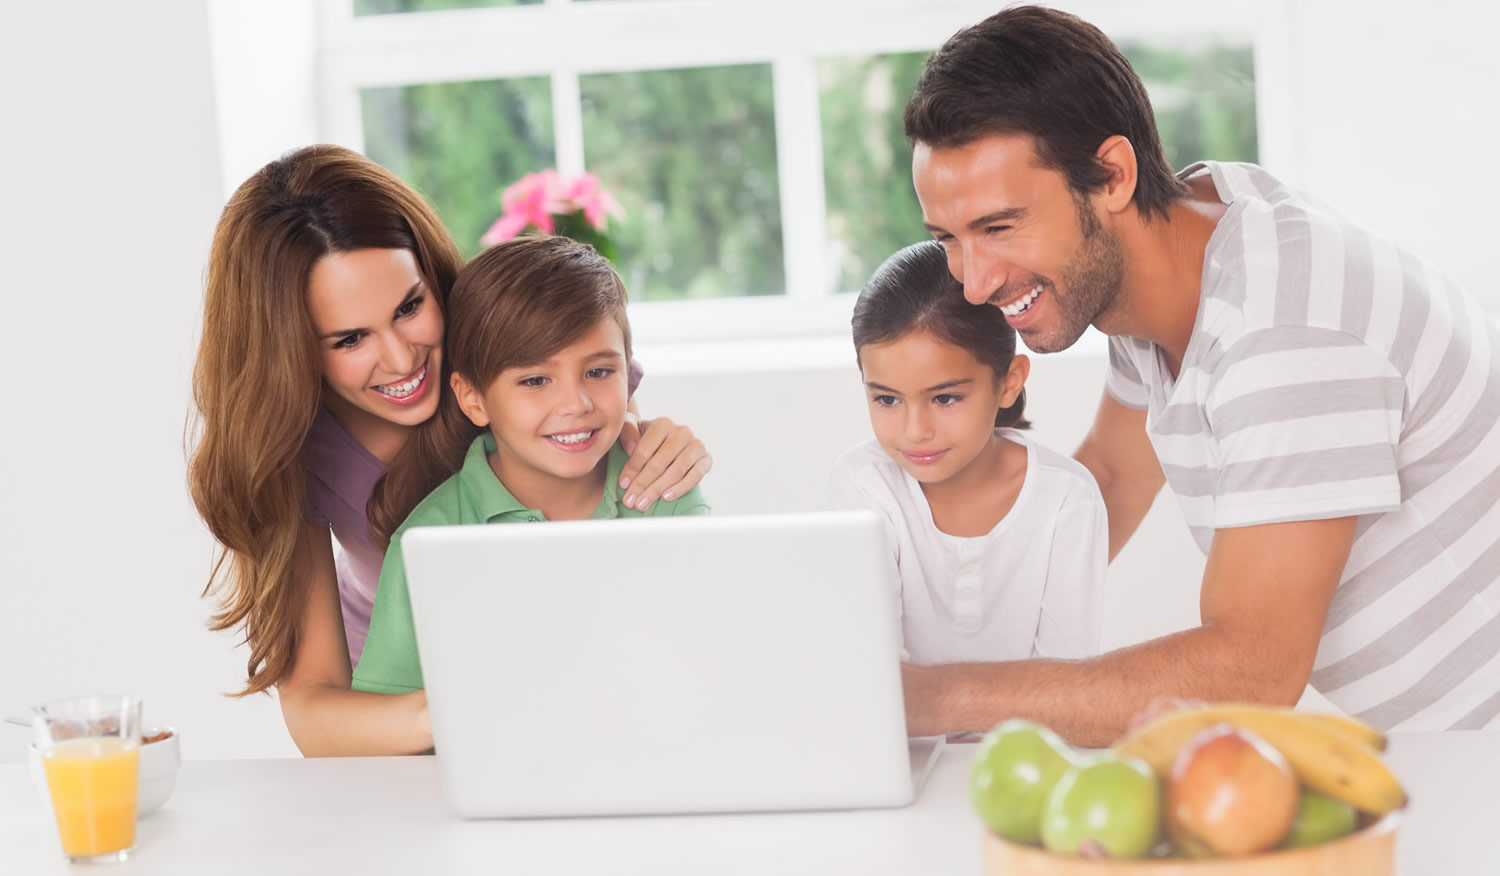 family-at-home-reading-laptop-information-london-city-mortgages